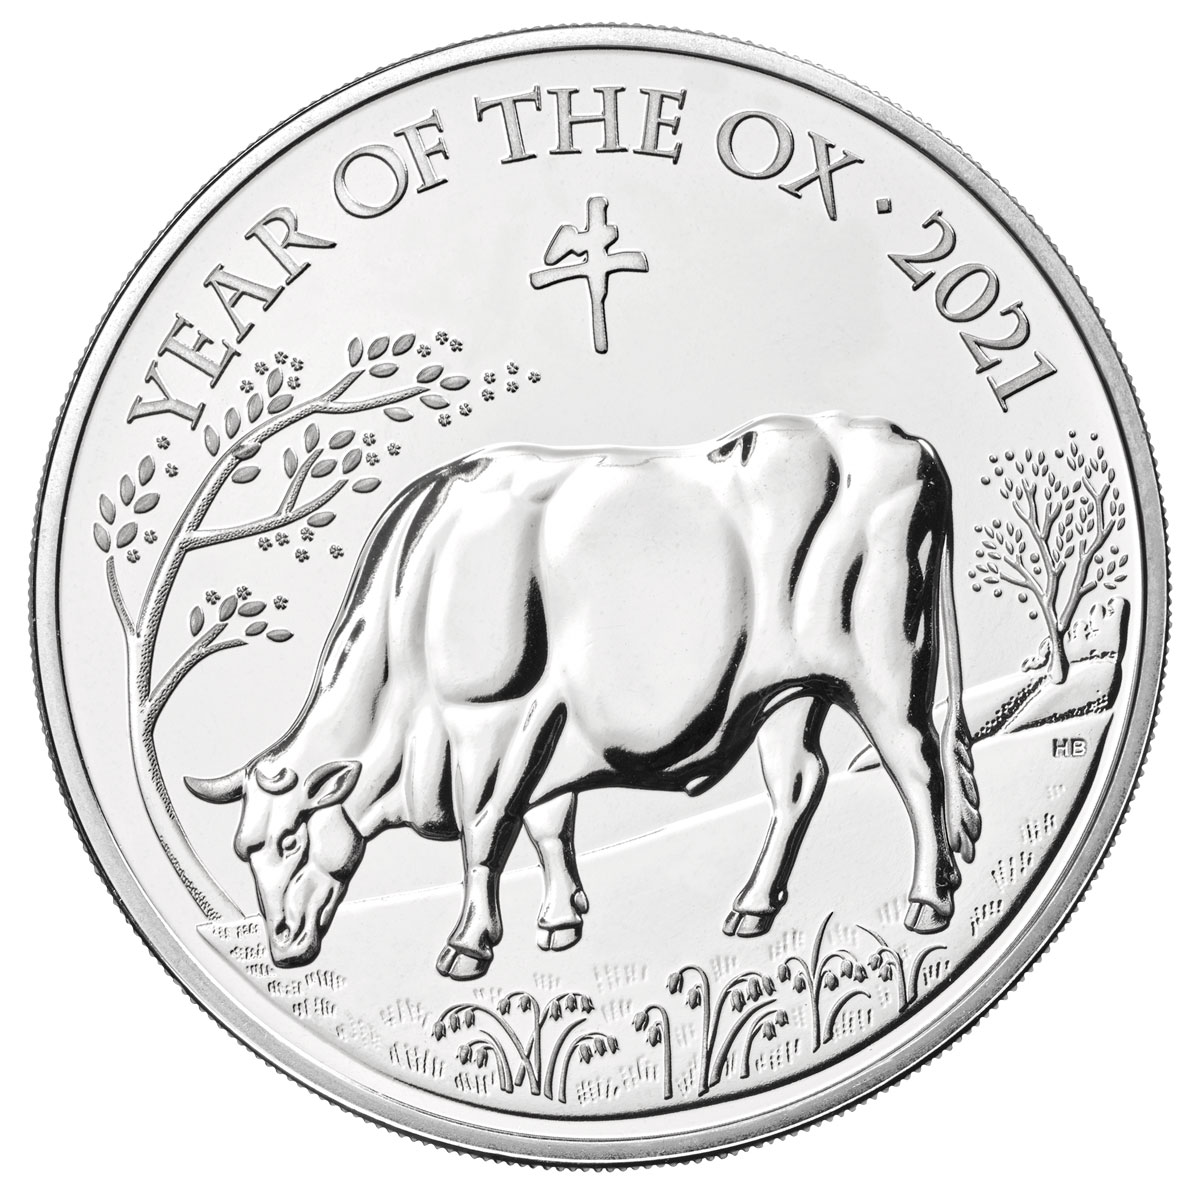 2021 Great Britain Year of the Ox CuNi Lunar £5 Coin GEM BU